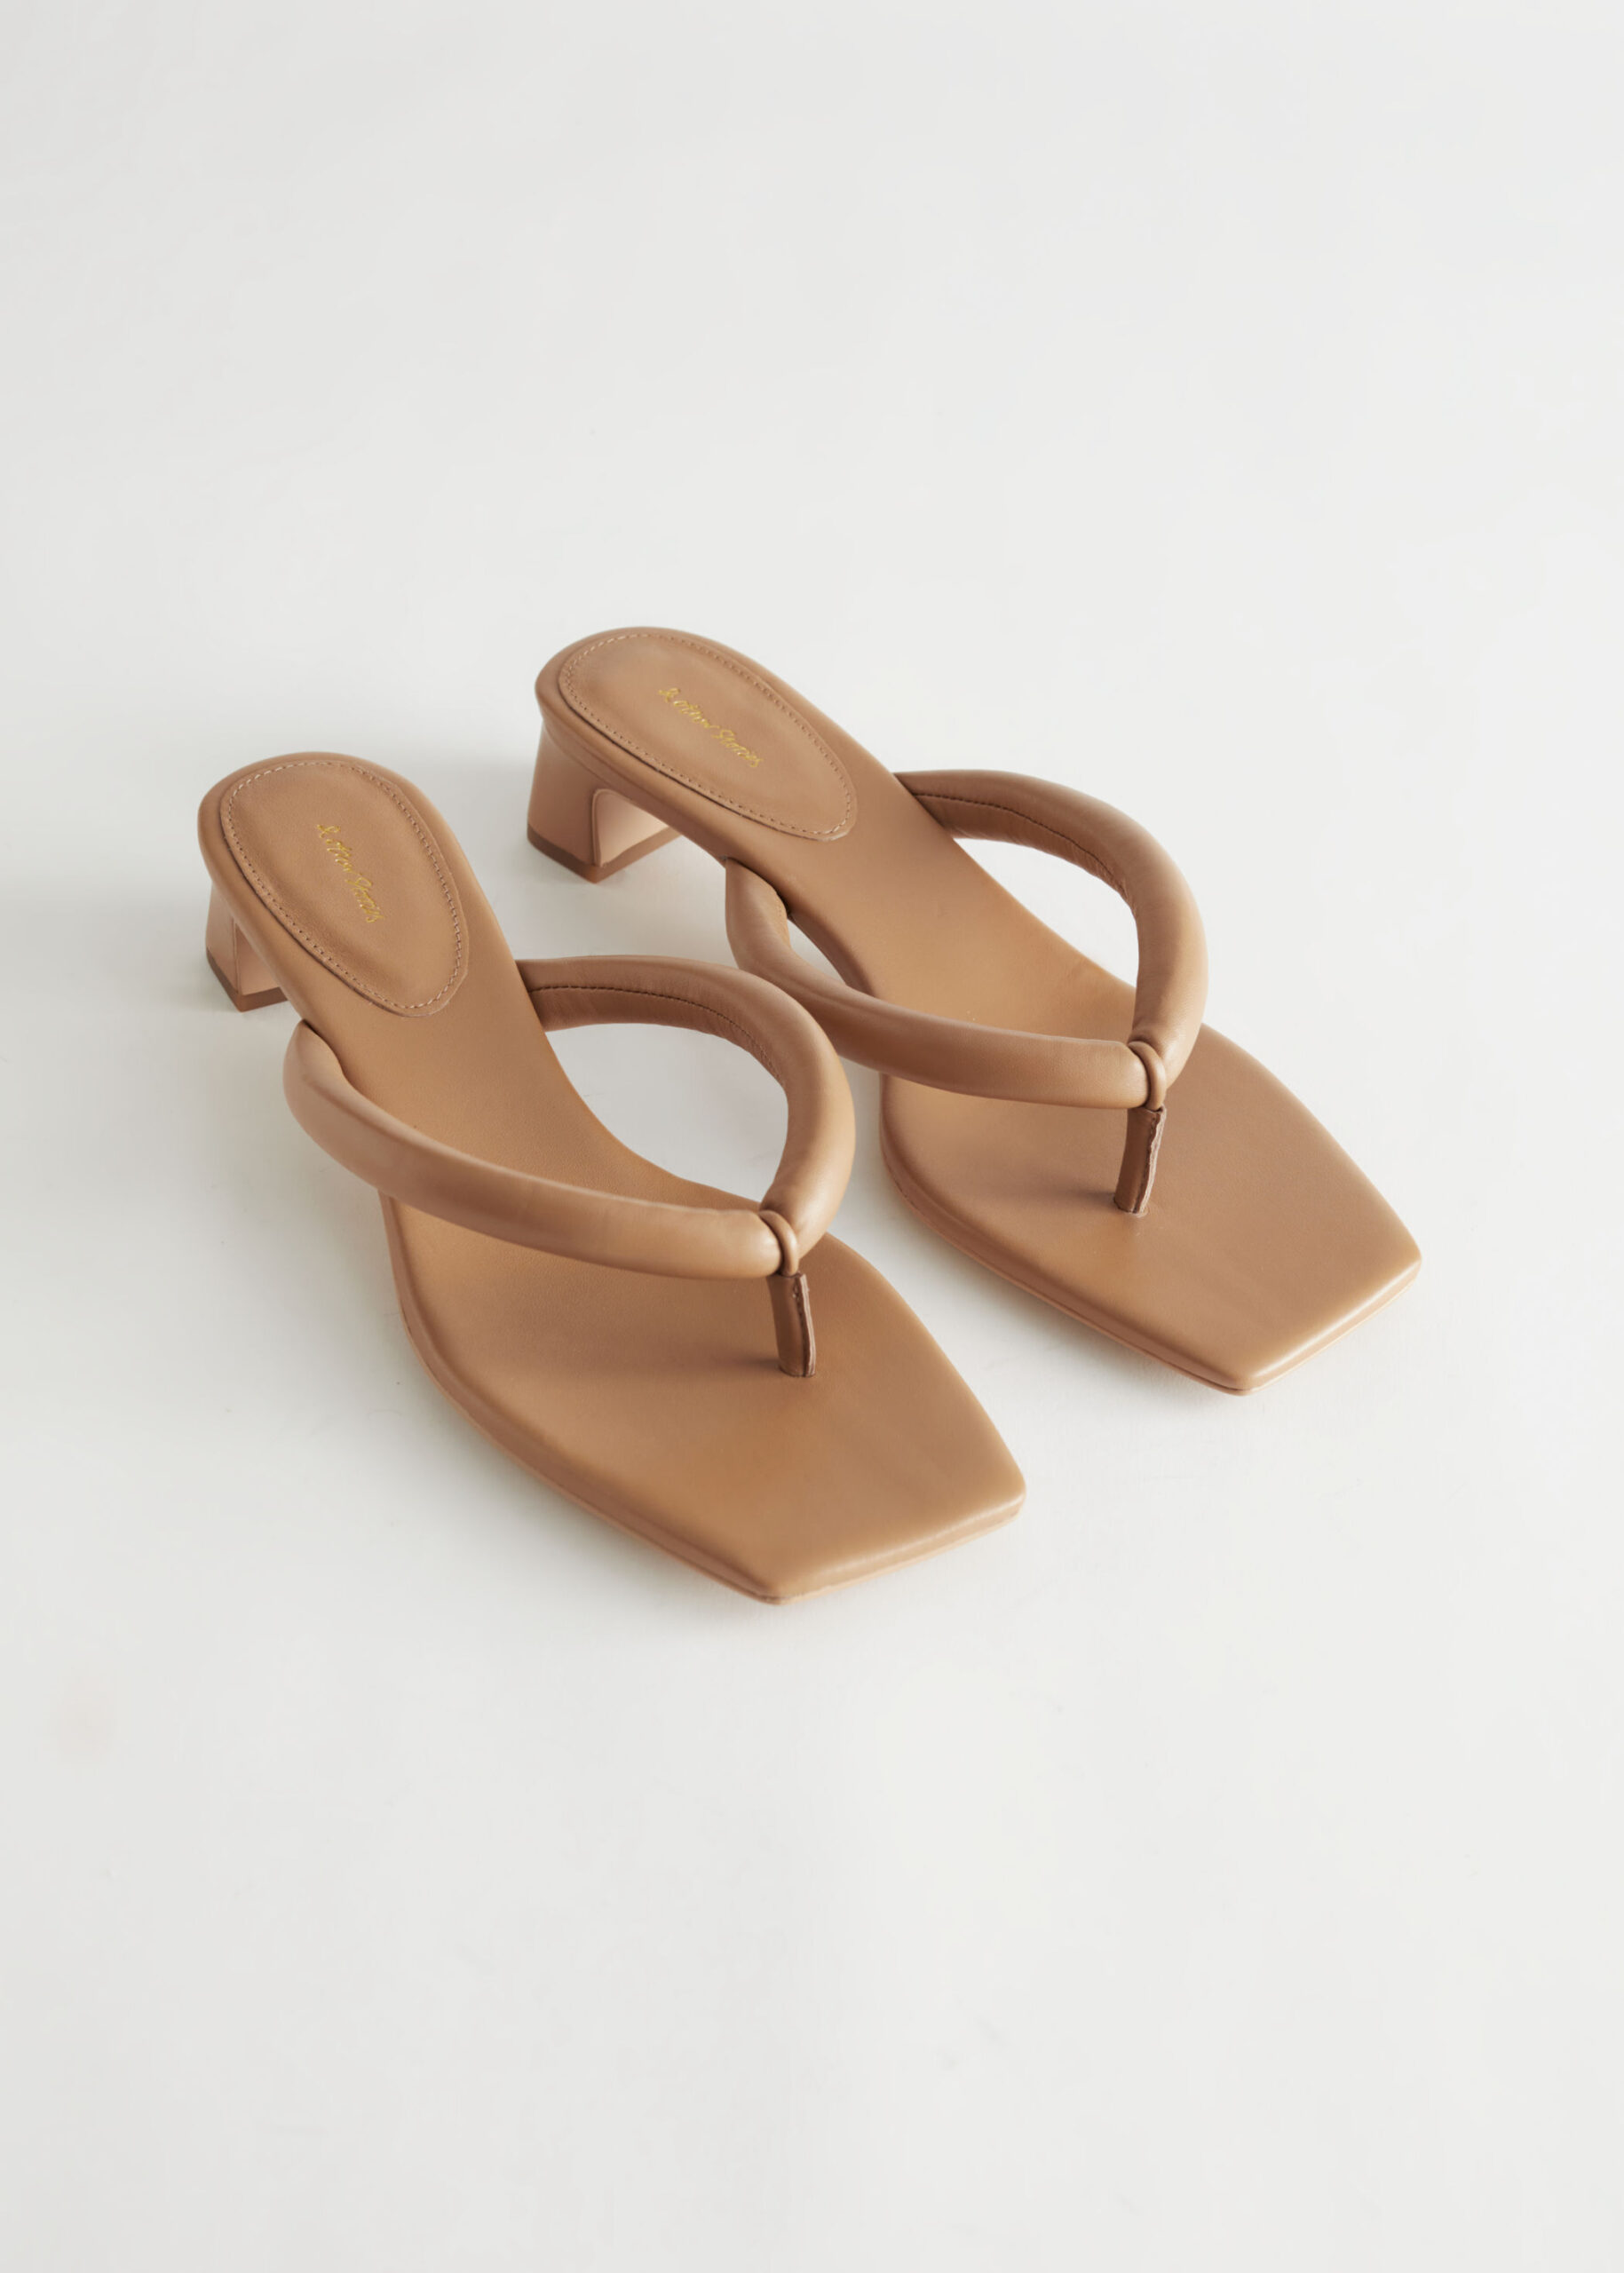 Thong Strap Heeled Leather Sandals $89.99